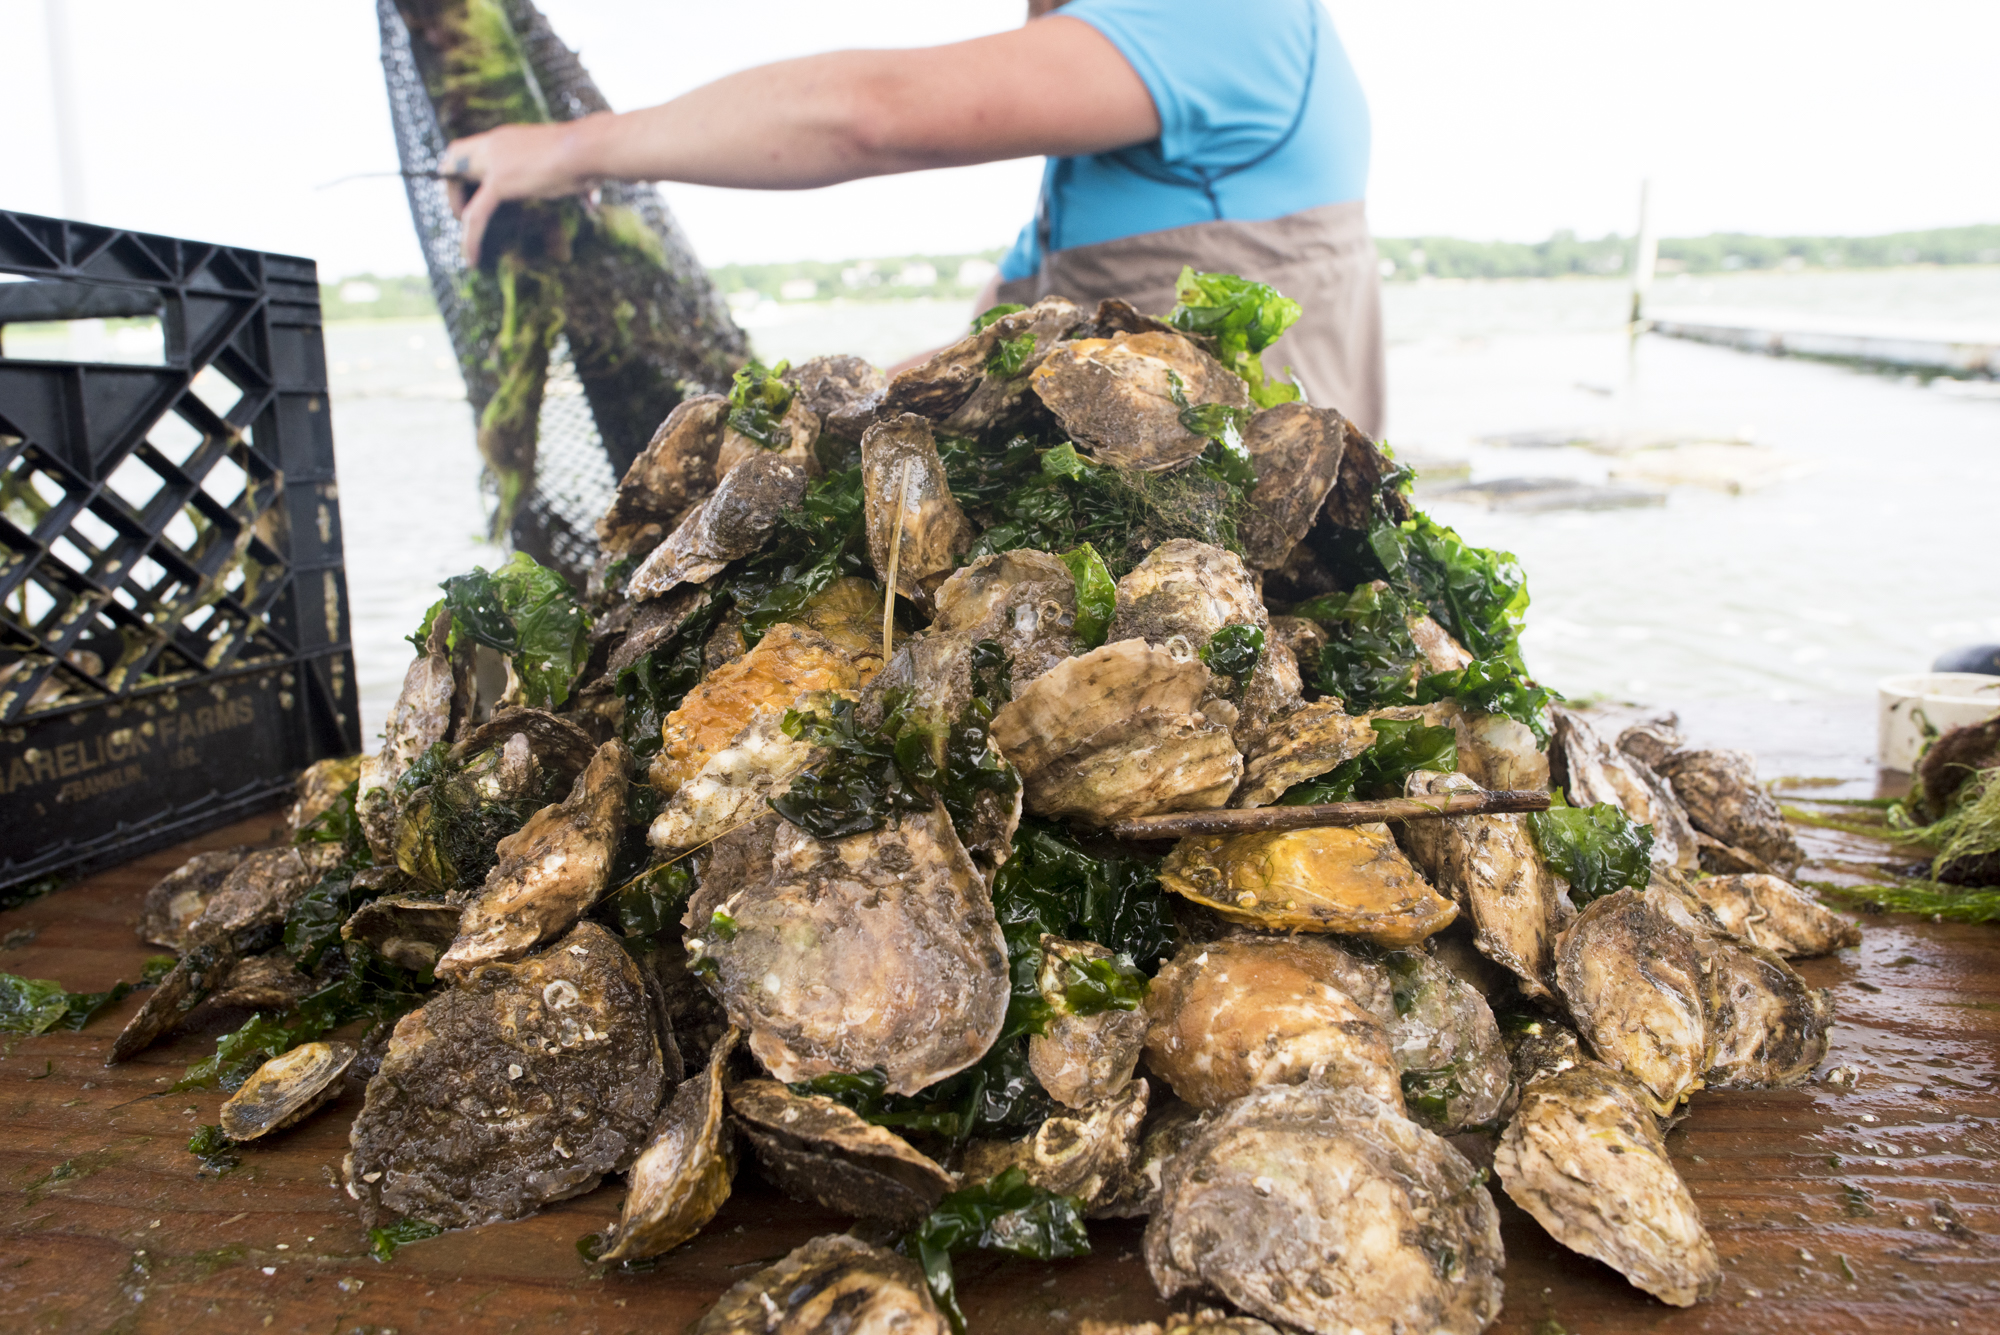 Oysters-5159.jpg